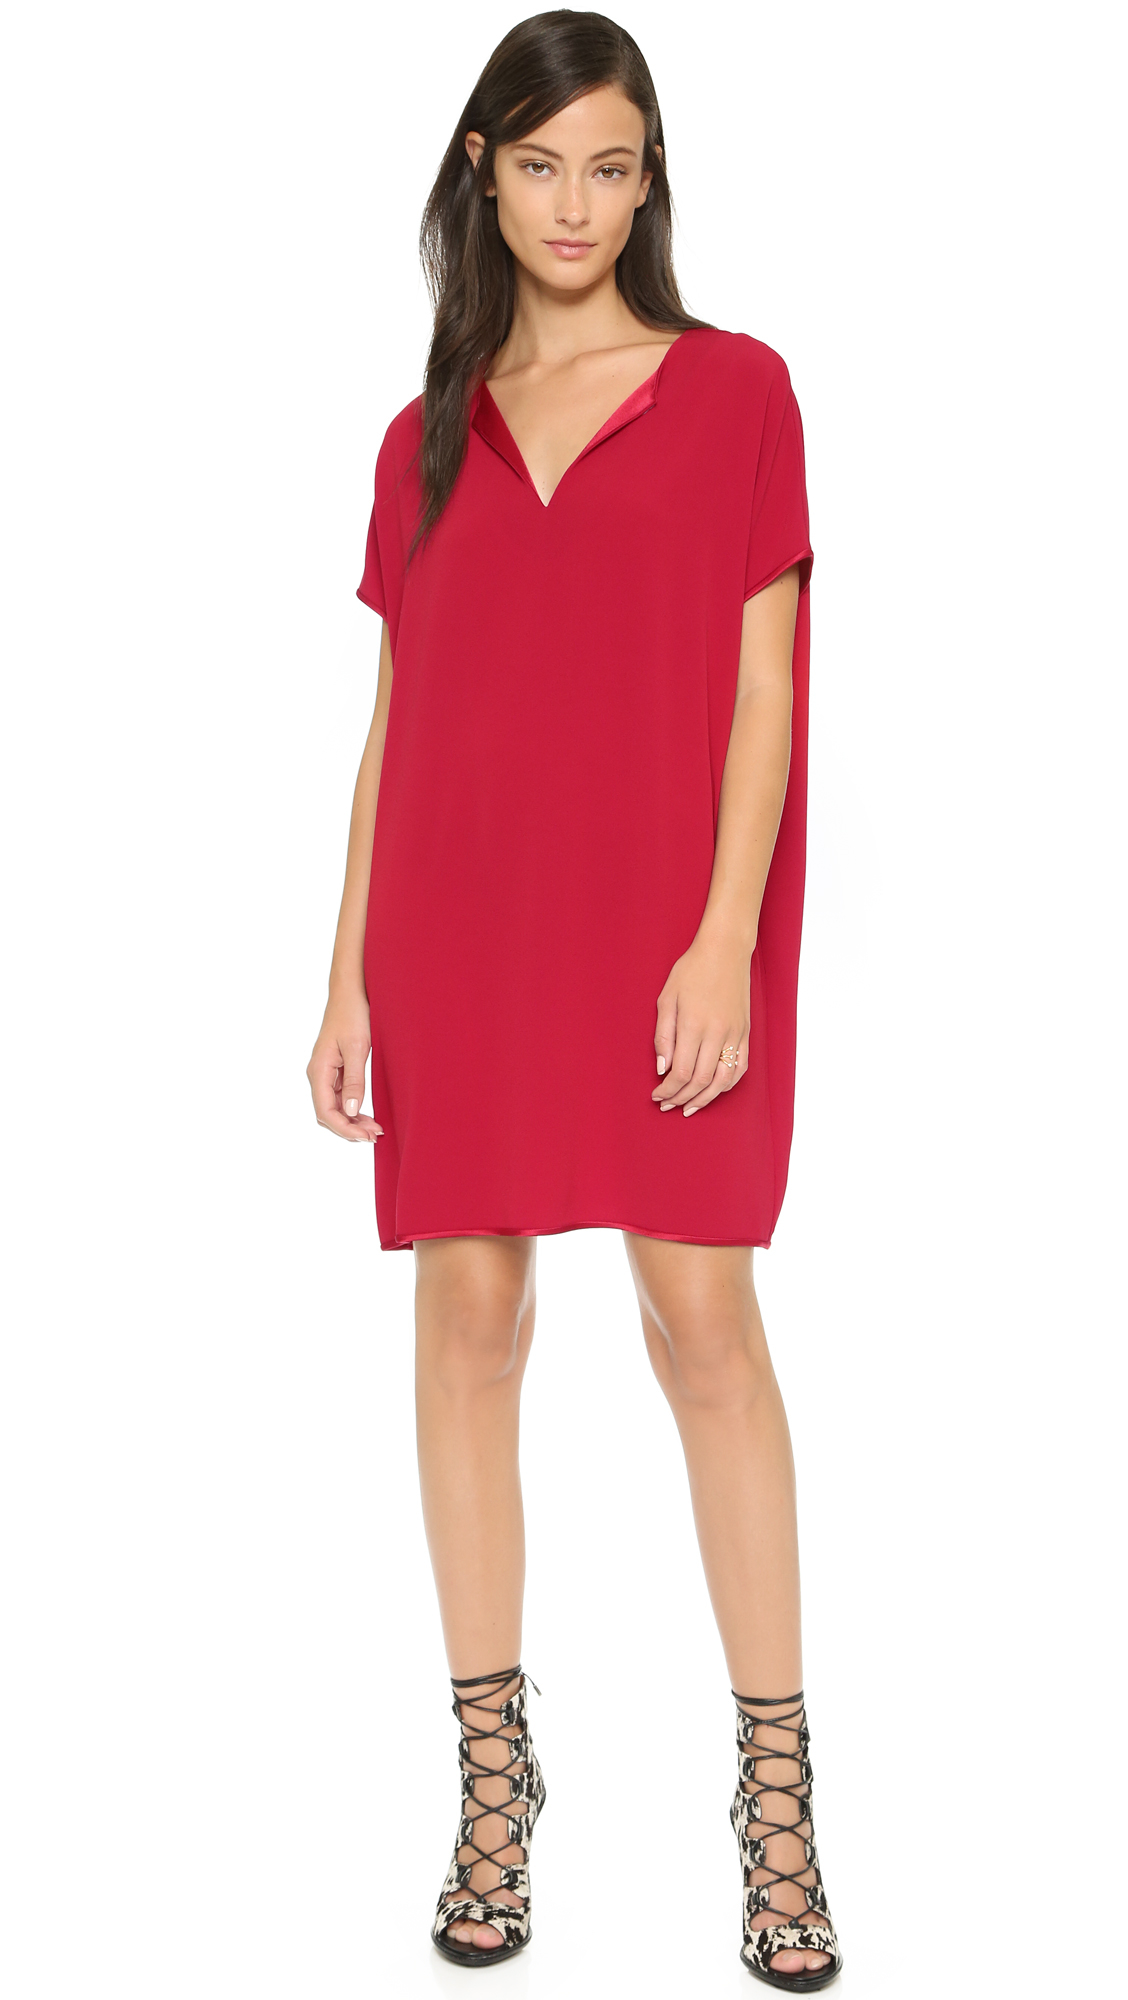 Diane von furstenberg Kora Dress in Red | Lyst